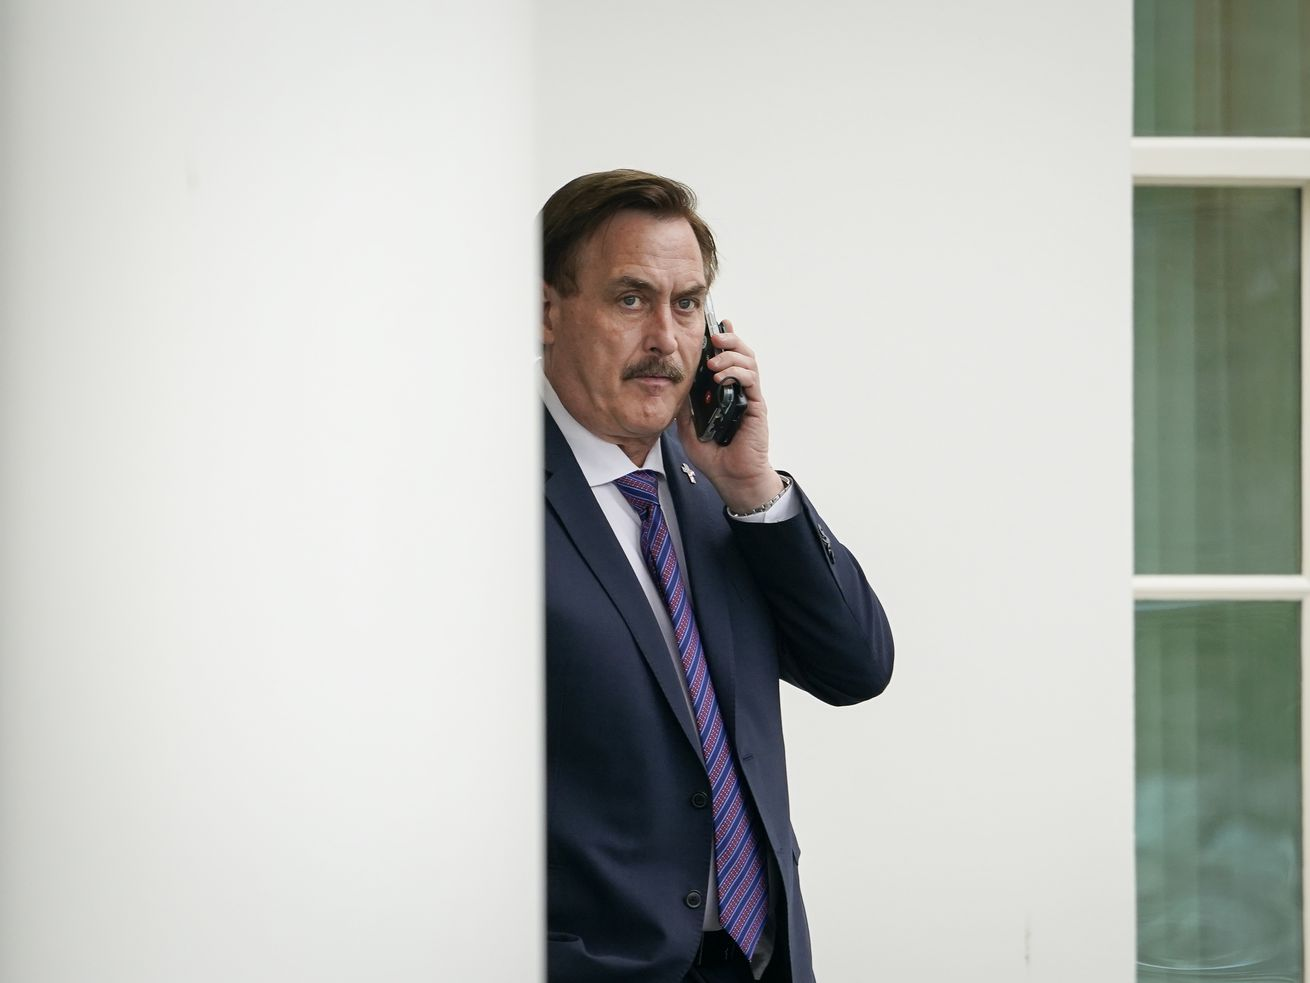 Mike Lindell on the phone peeking out from behind a pillar.